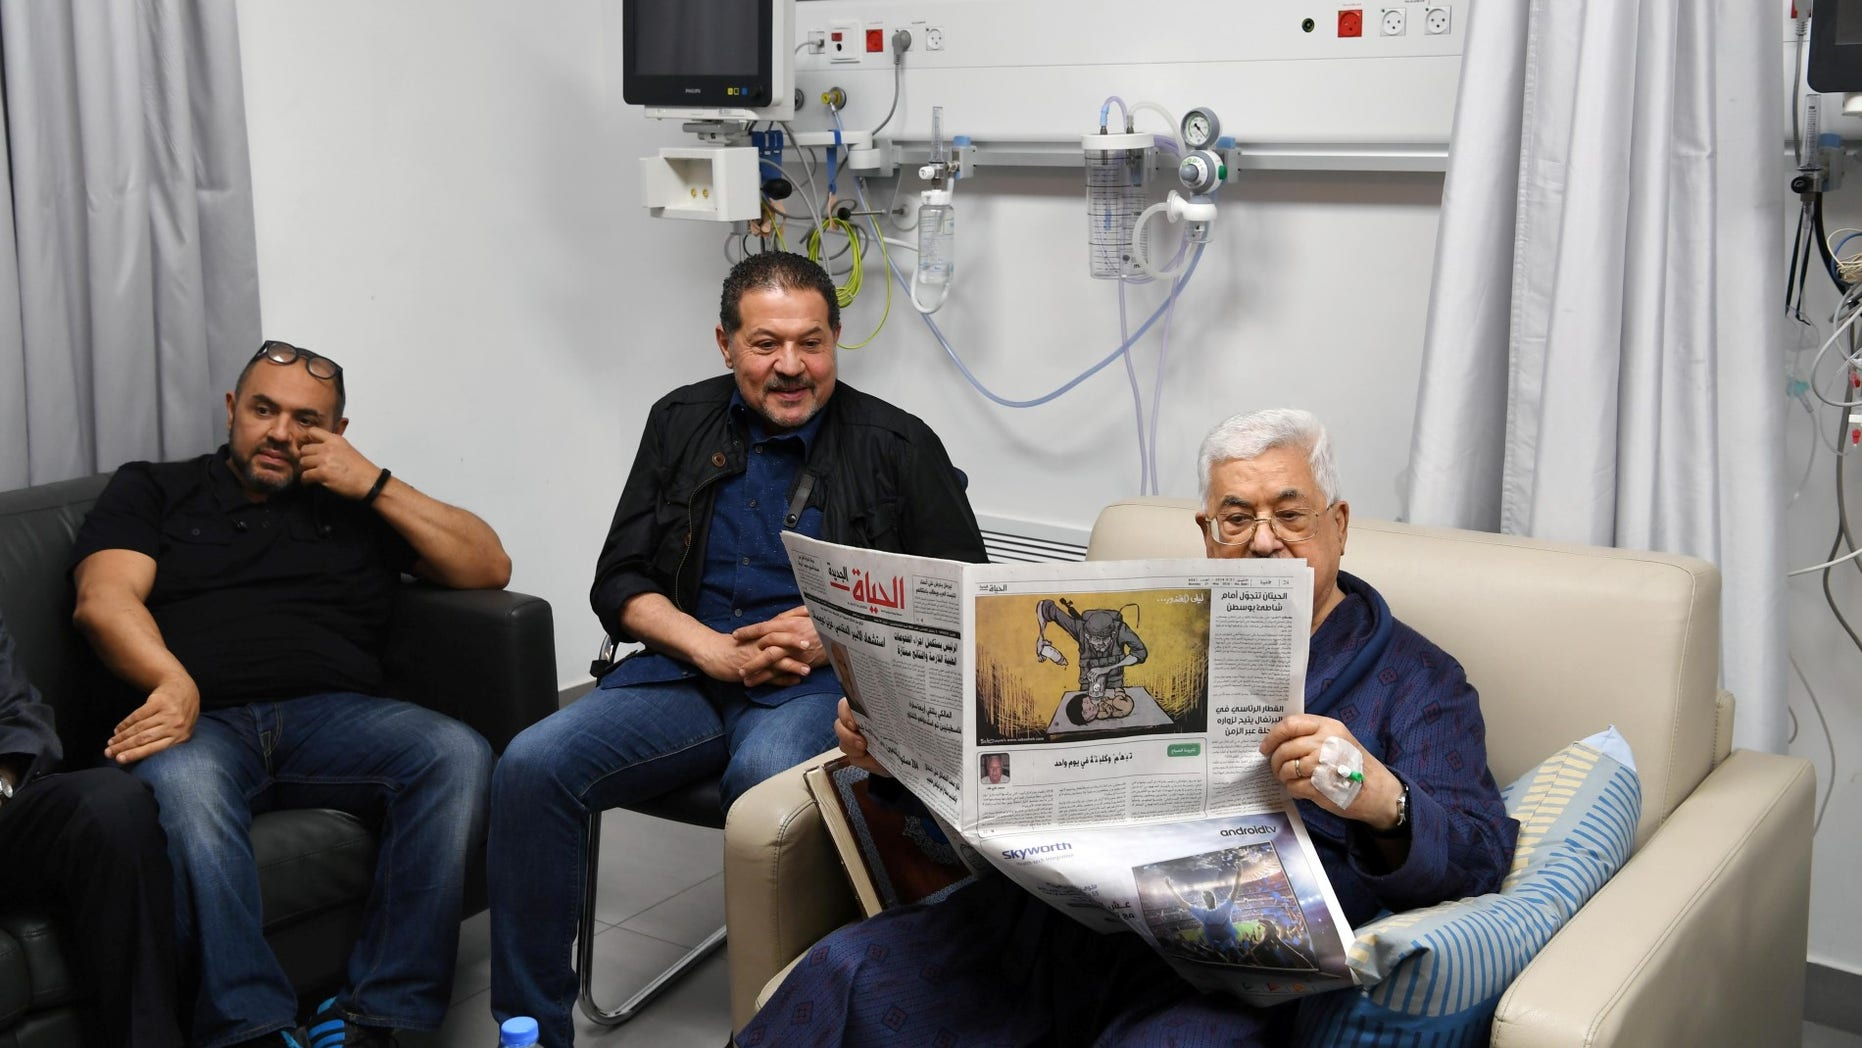 Palestinian President Mahmoud Abbas reads a newspaper inside the hospital in Ramallah, in the occupied West Bank May 21, 2018.